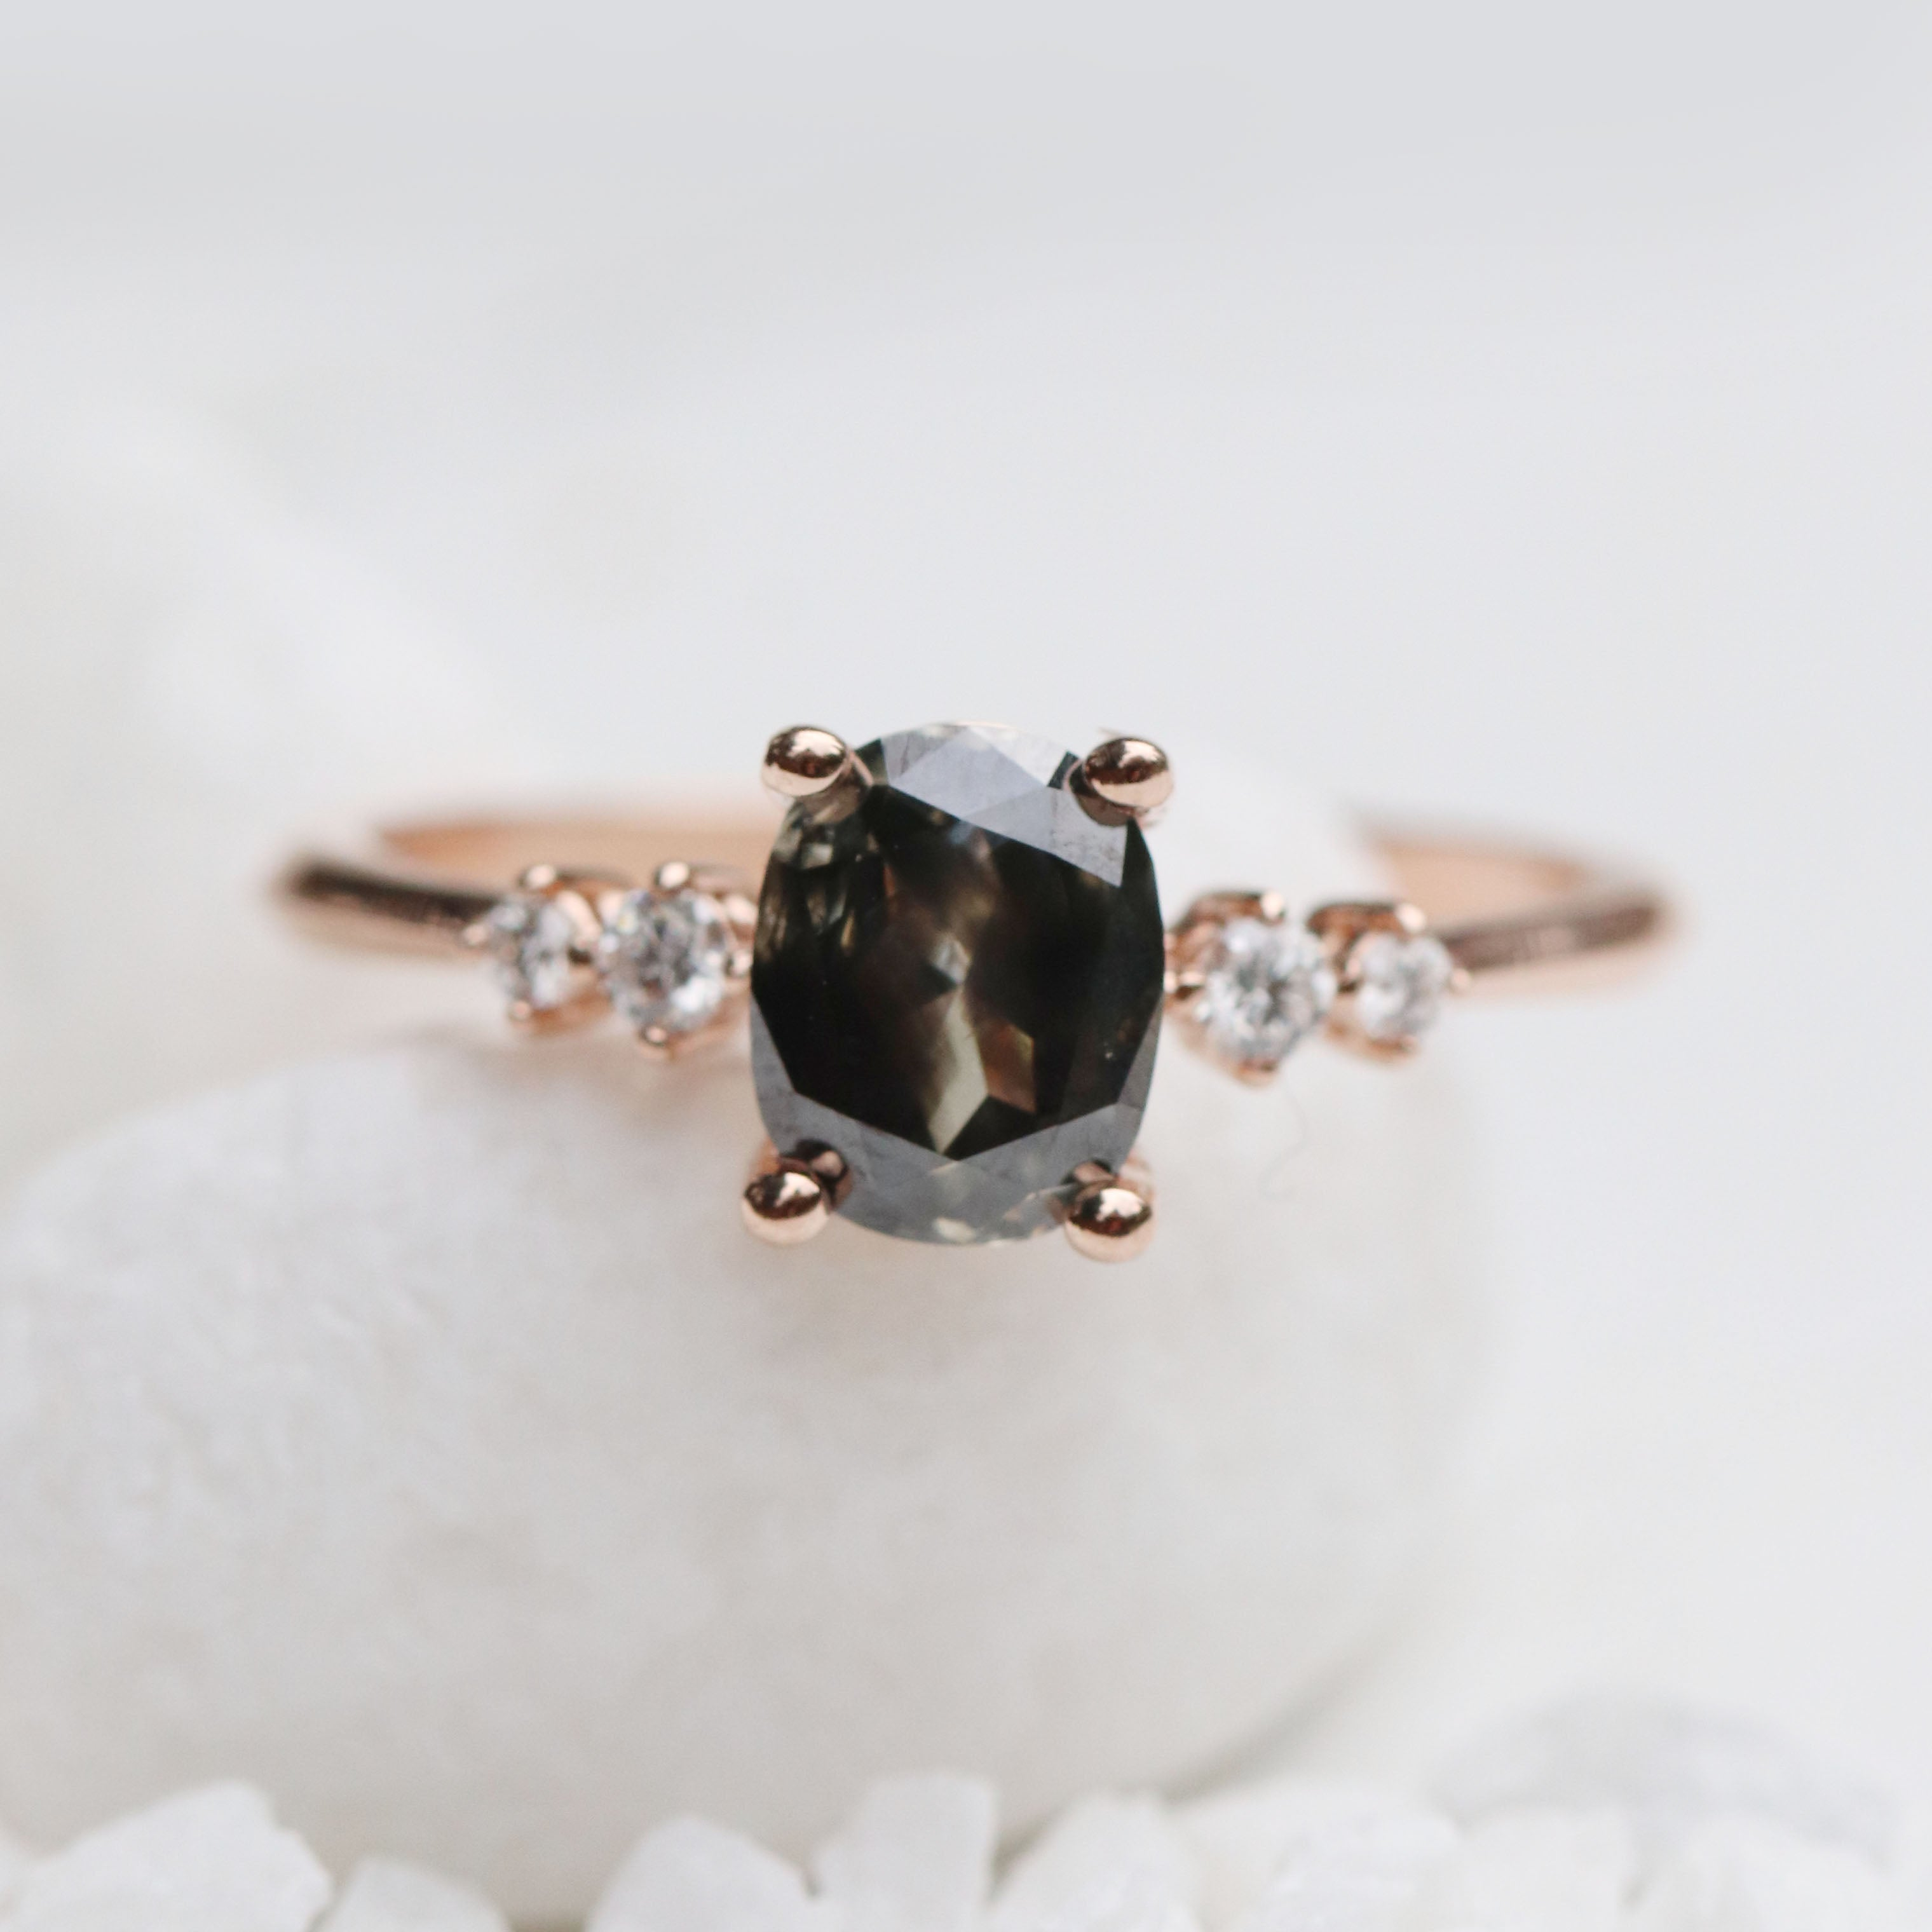 Cordelia Ring with 1.22ct Black Oval Celestial Diamond - Ready to Size and Ship - Salt & Pepper Celestial Diamond Engagement Rings and Wedding Bands  by Midwinter Co.